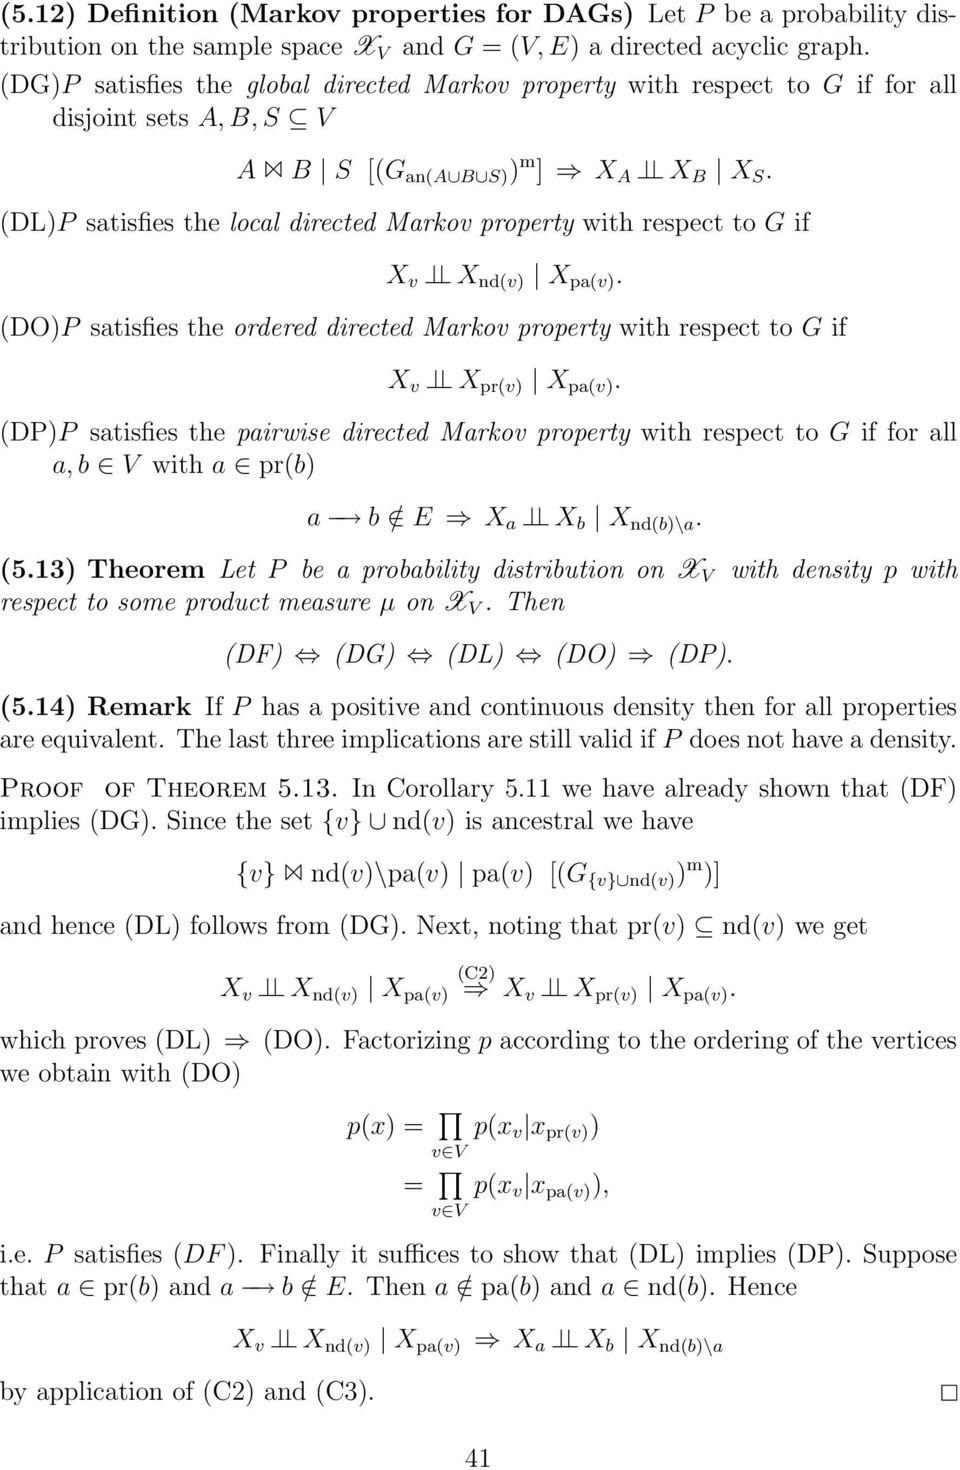 (DL)P satisfies the local directed Markov property with respect to G if X v X nd(v) X pa(v). (DO)P satisfies the ordered directed Markov property with respect to G if X v X pr(v) X pa(v).